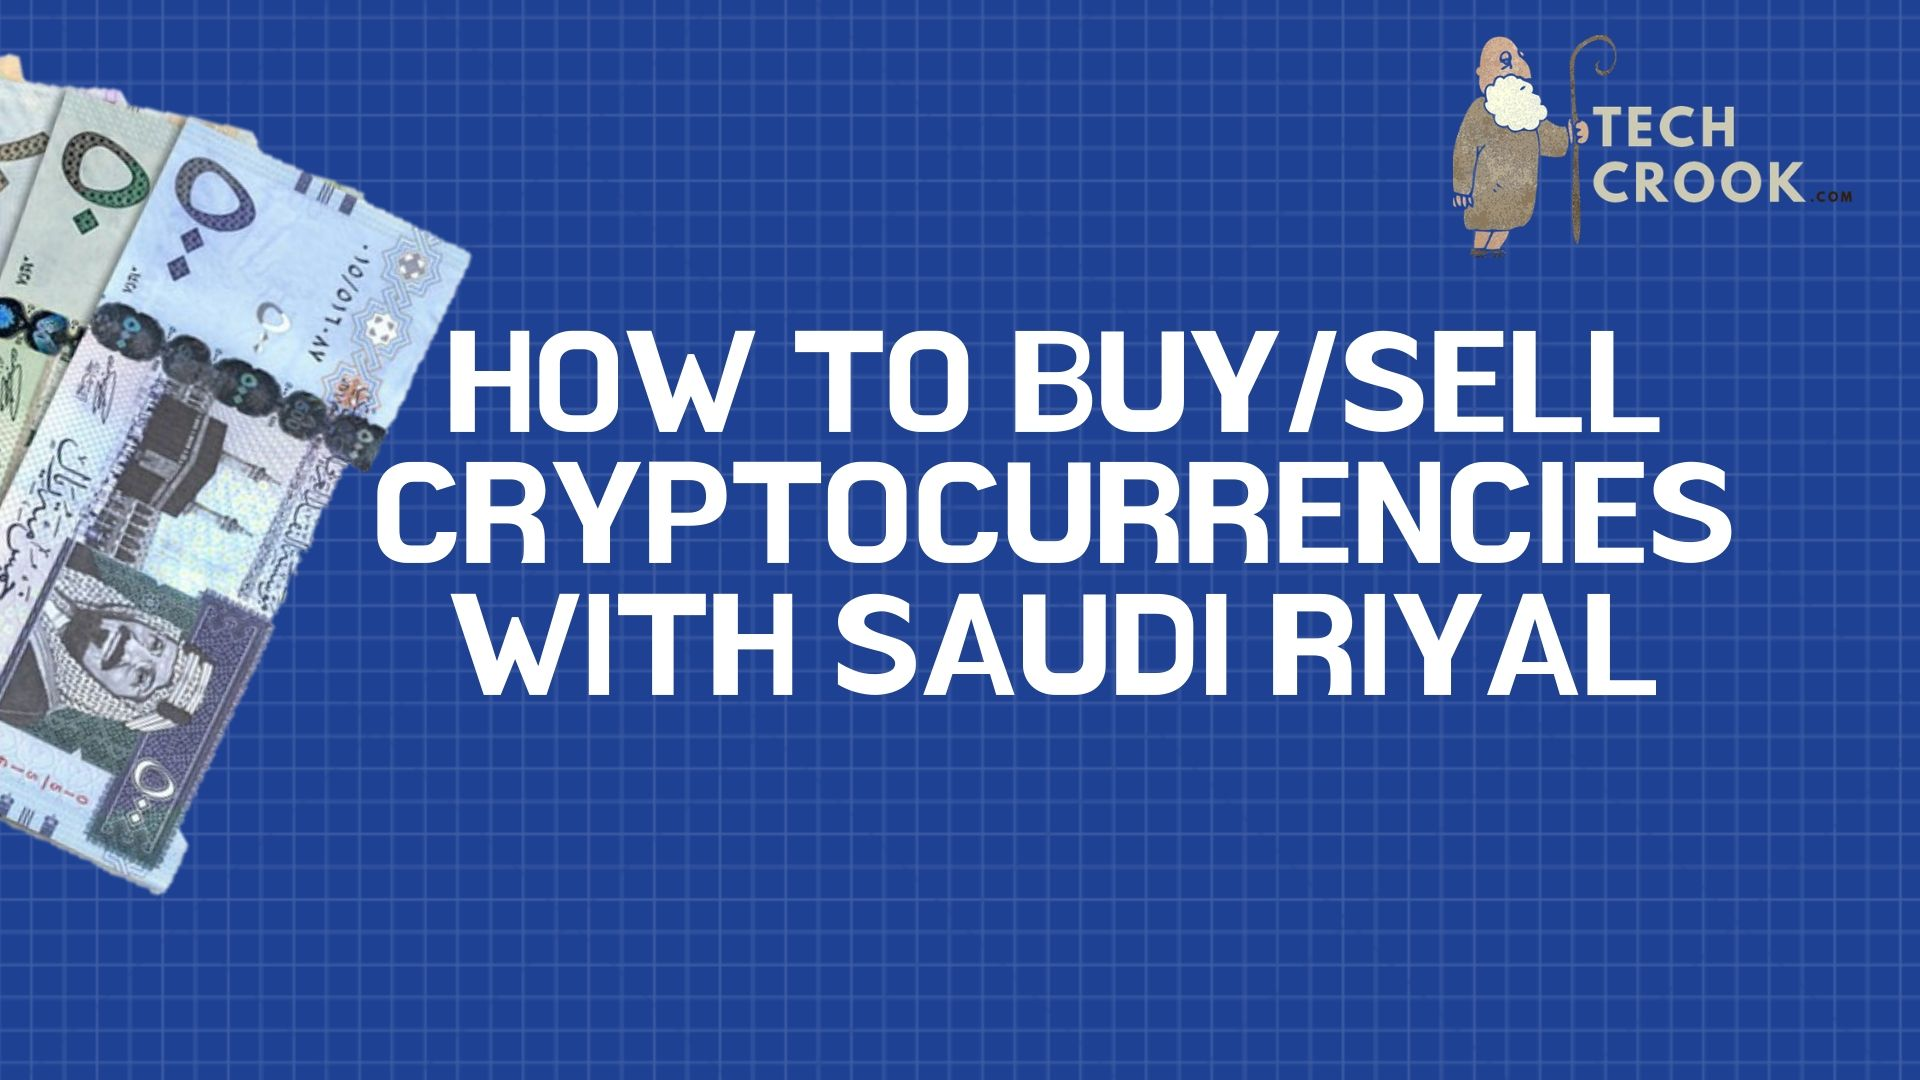 How to buy cryptocurrency like Bitcoin, Litecoin in Saudi Arabia